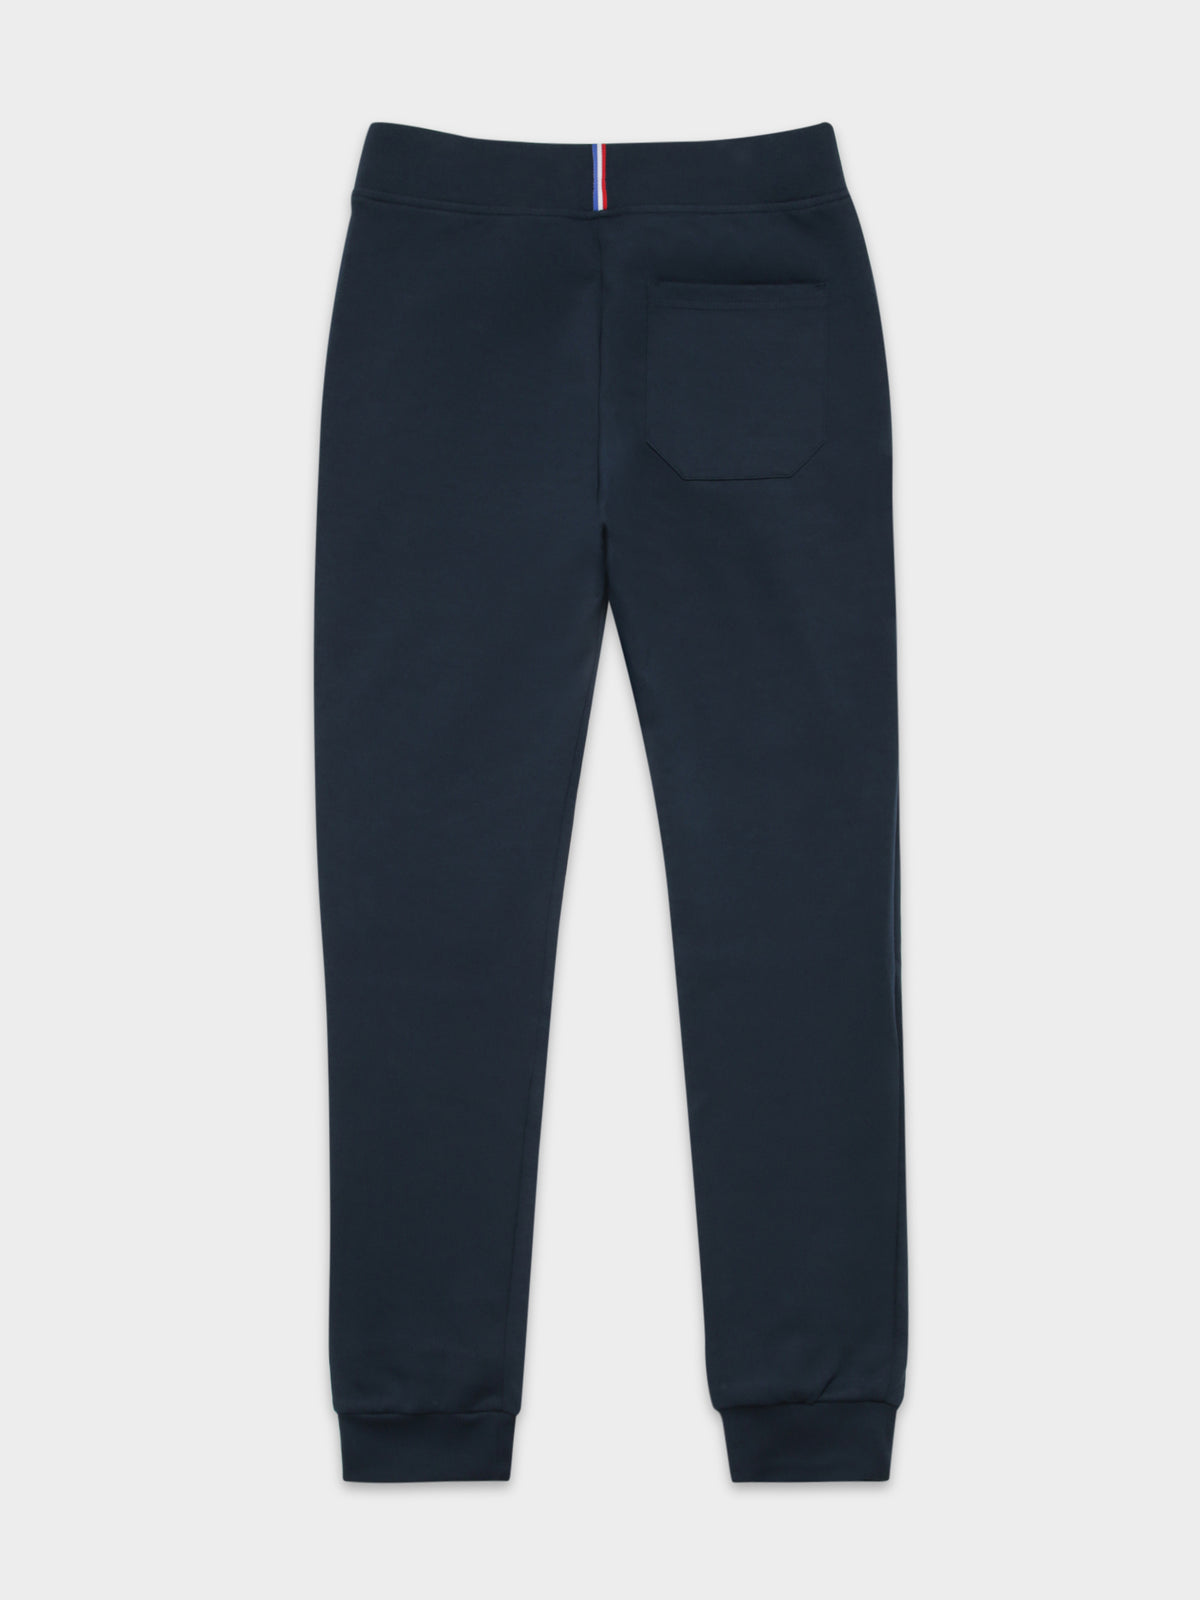 ESS SP Slim Pant in Blue